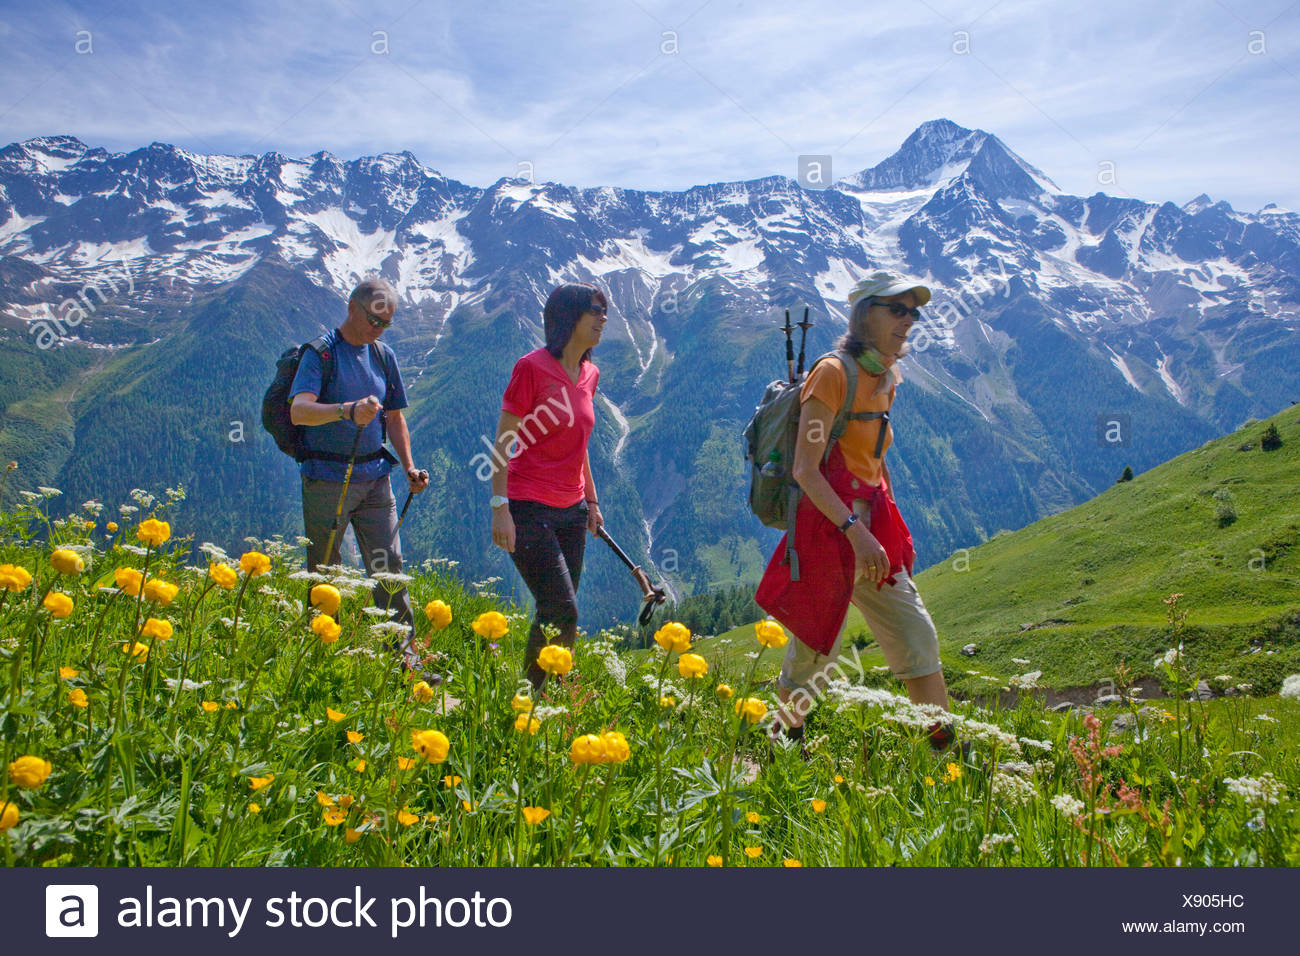 Walking, Hiking, Lötschentaler height way, height way, view, Bietschhorn, canton, Valais, mountain, mountains, group, footpath, - Stock Image